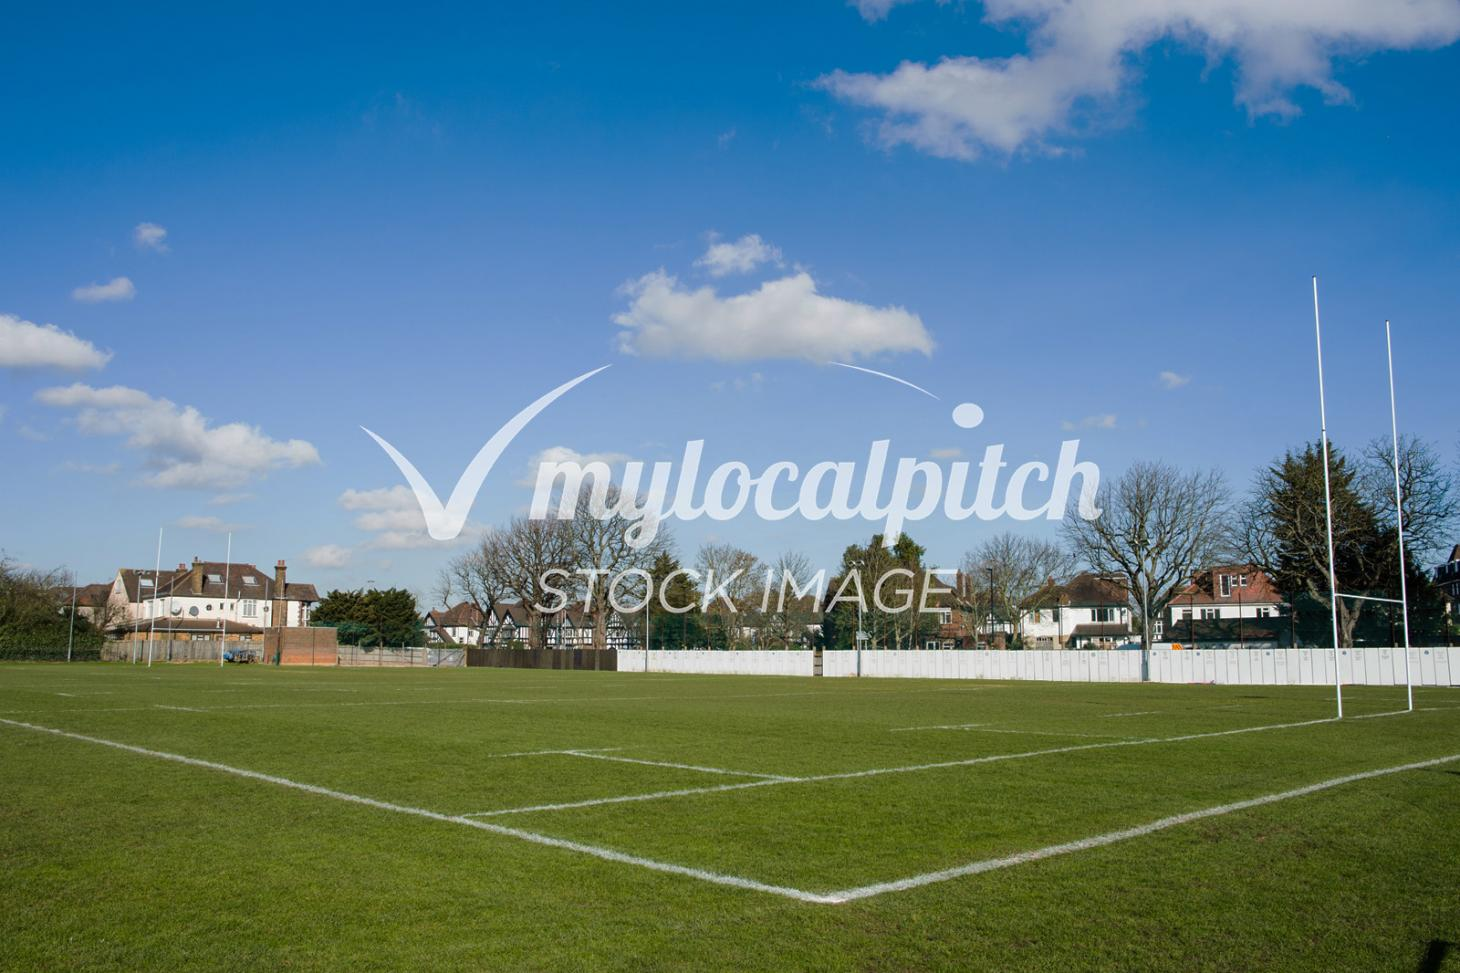 Watford Grammar School for Boys Union | Grass rugby pitch